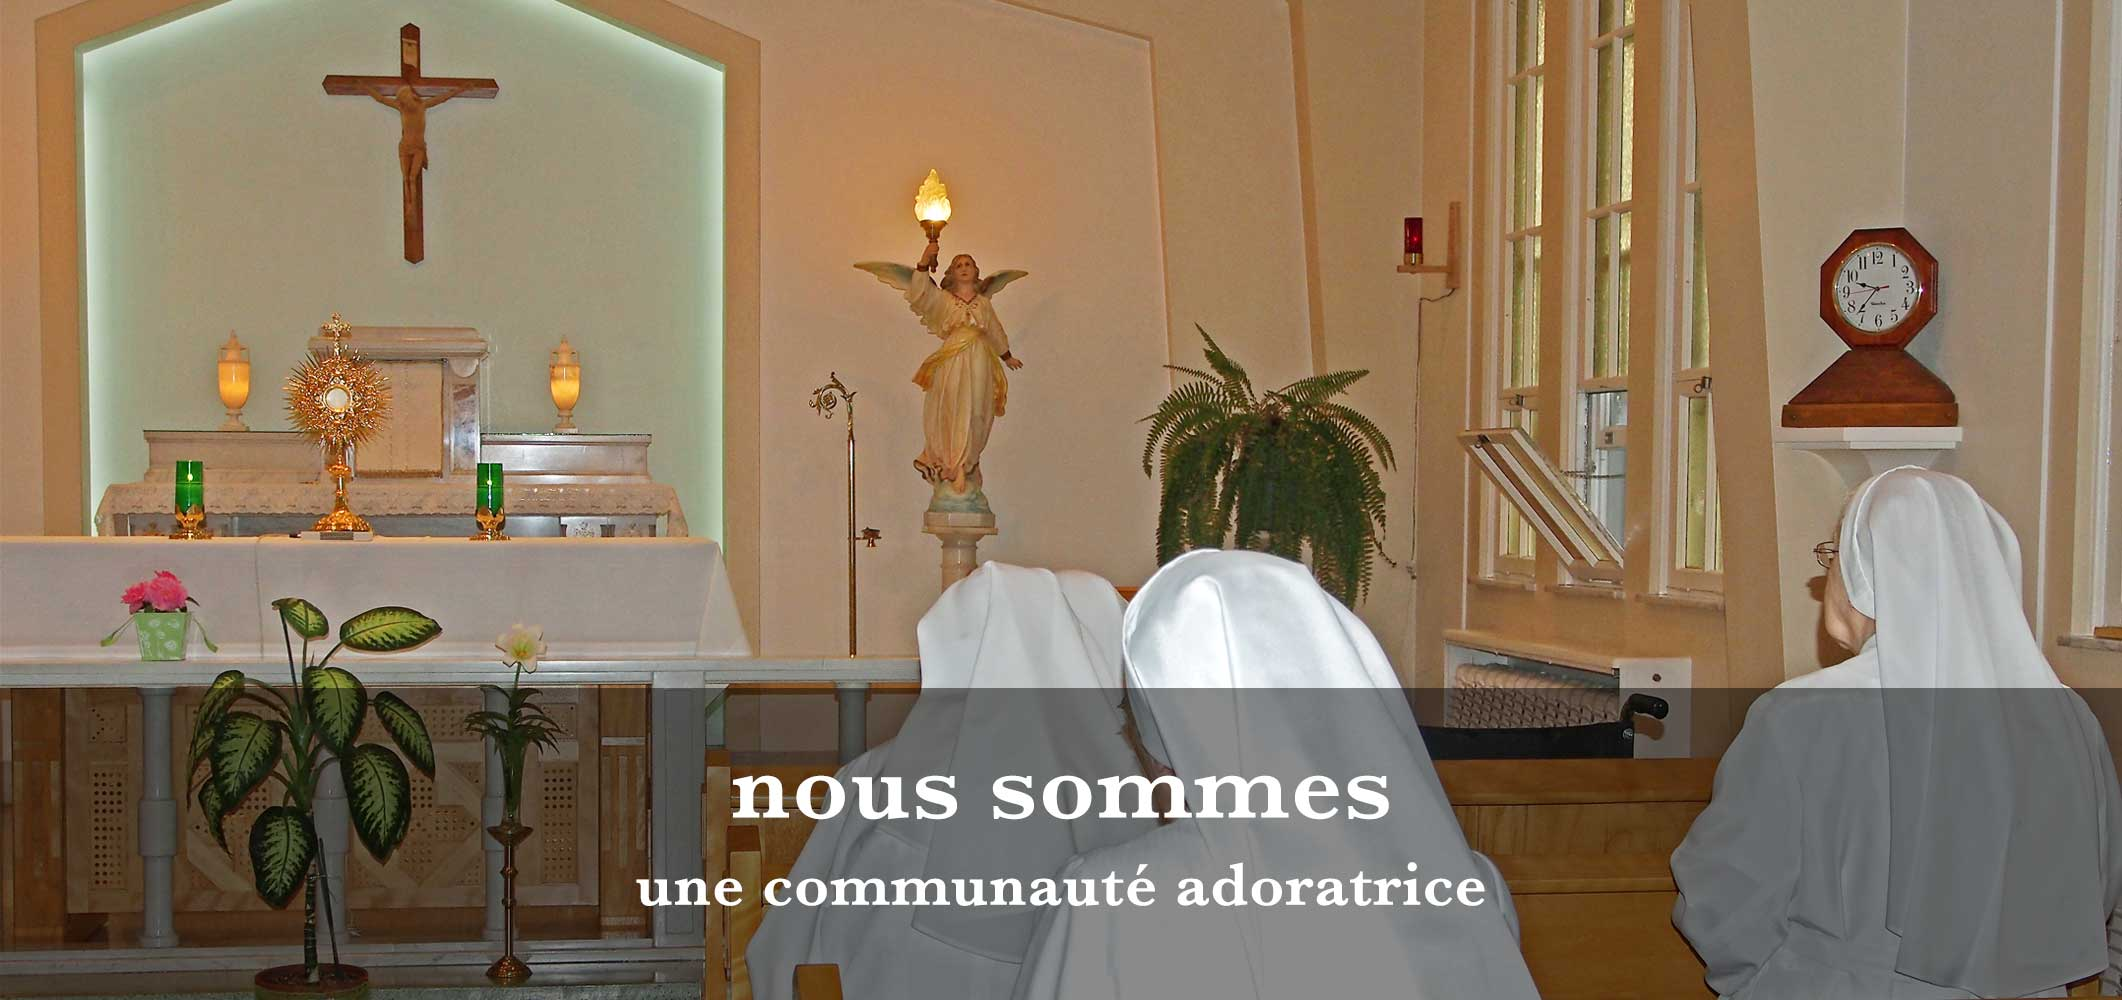 Photo de soeurs Oblates en adoration devant le saint Sacrement